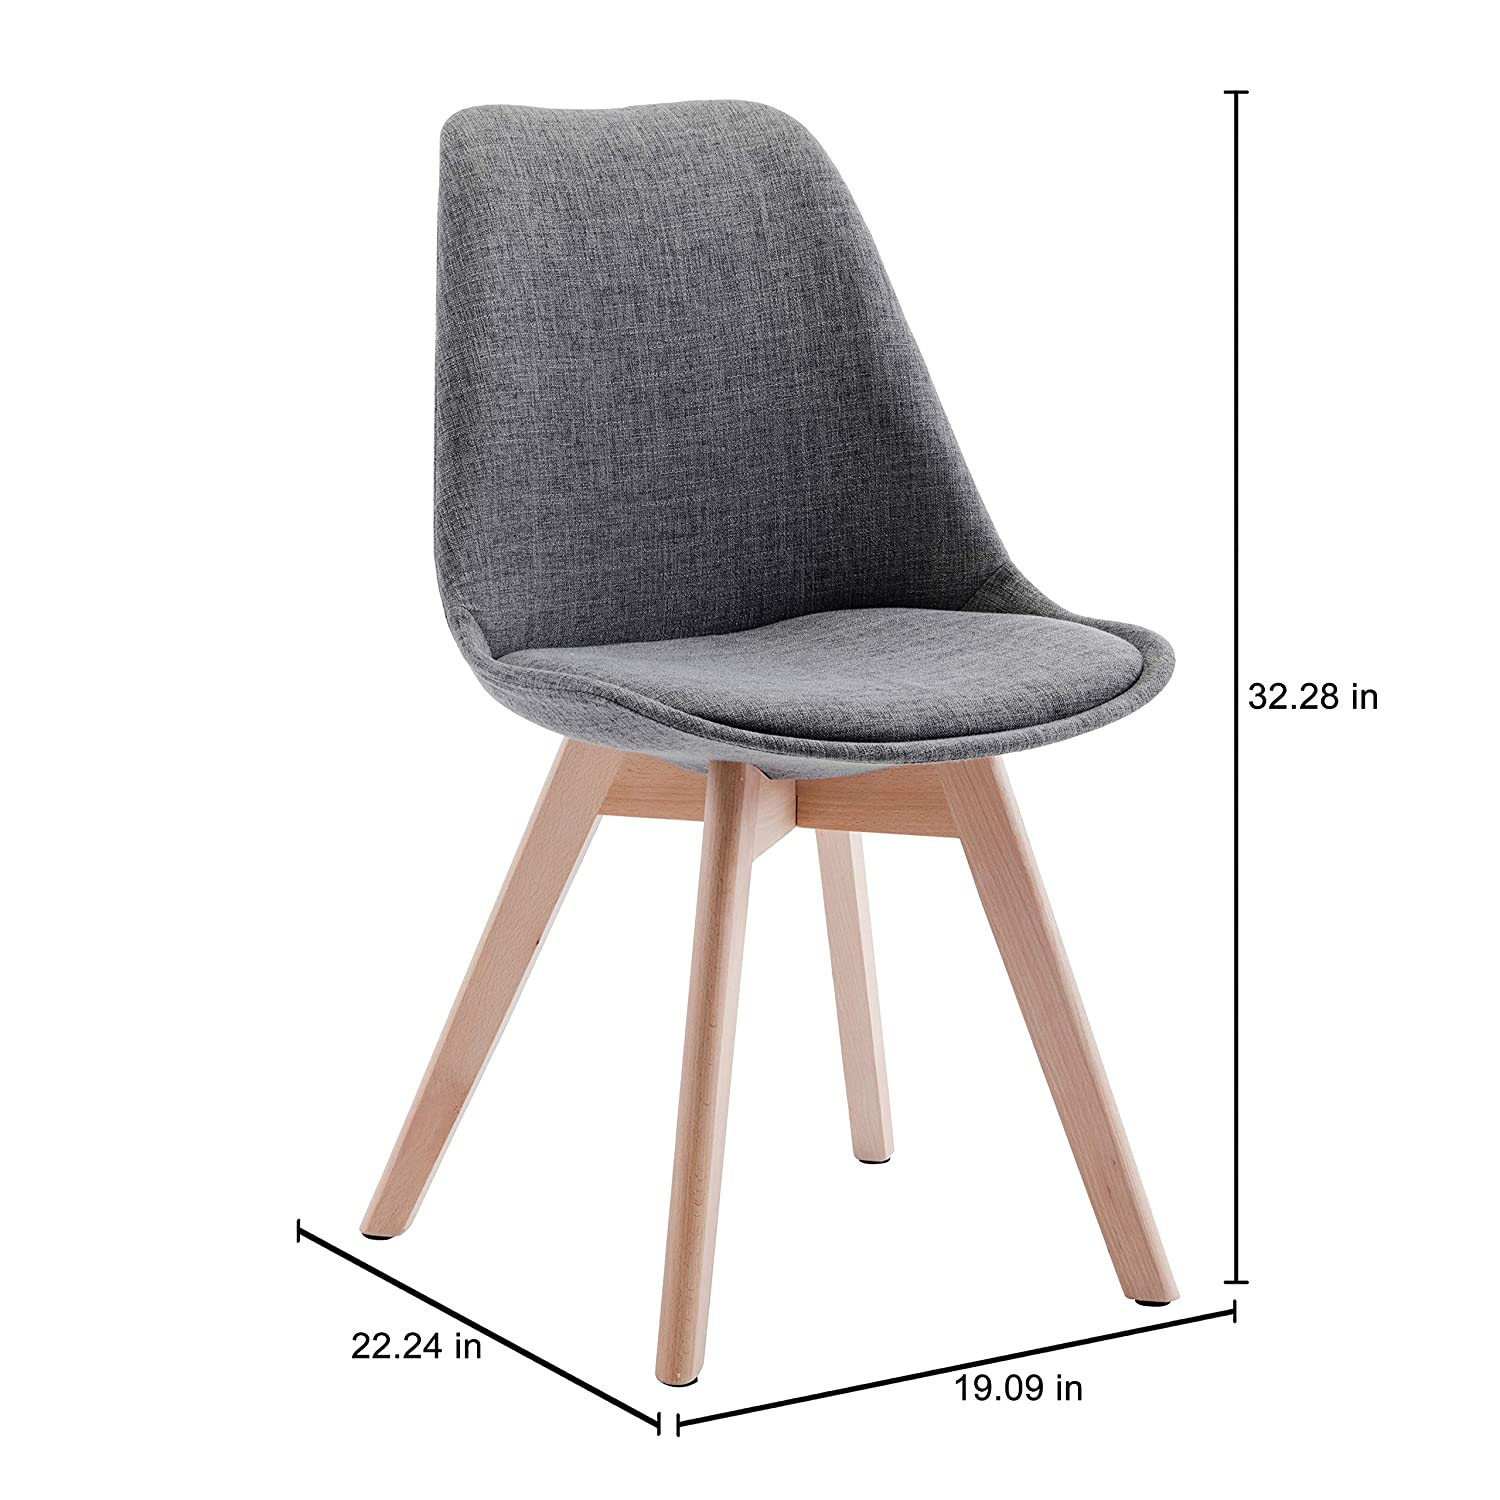 Size 32x19x22 Inches Sturdy Support Upholstered Side Chairs for Home or Business Porthos Home TFC052A BLU Set of 2 Modern Dining Room Stylish Beech Wood Legs for Practical Grey or Blue One